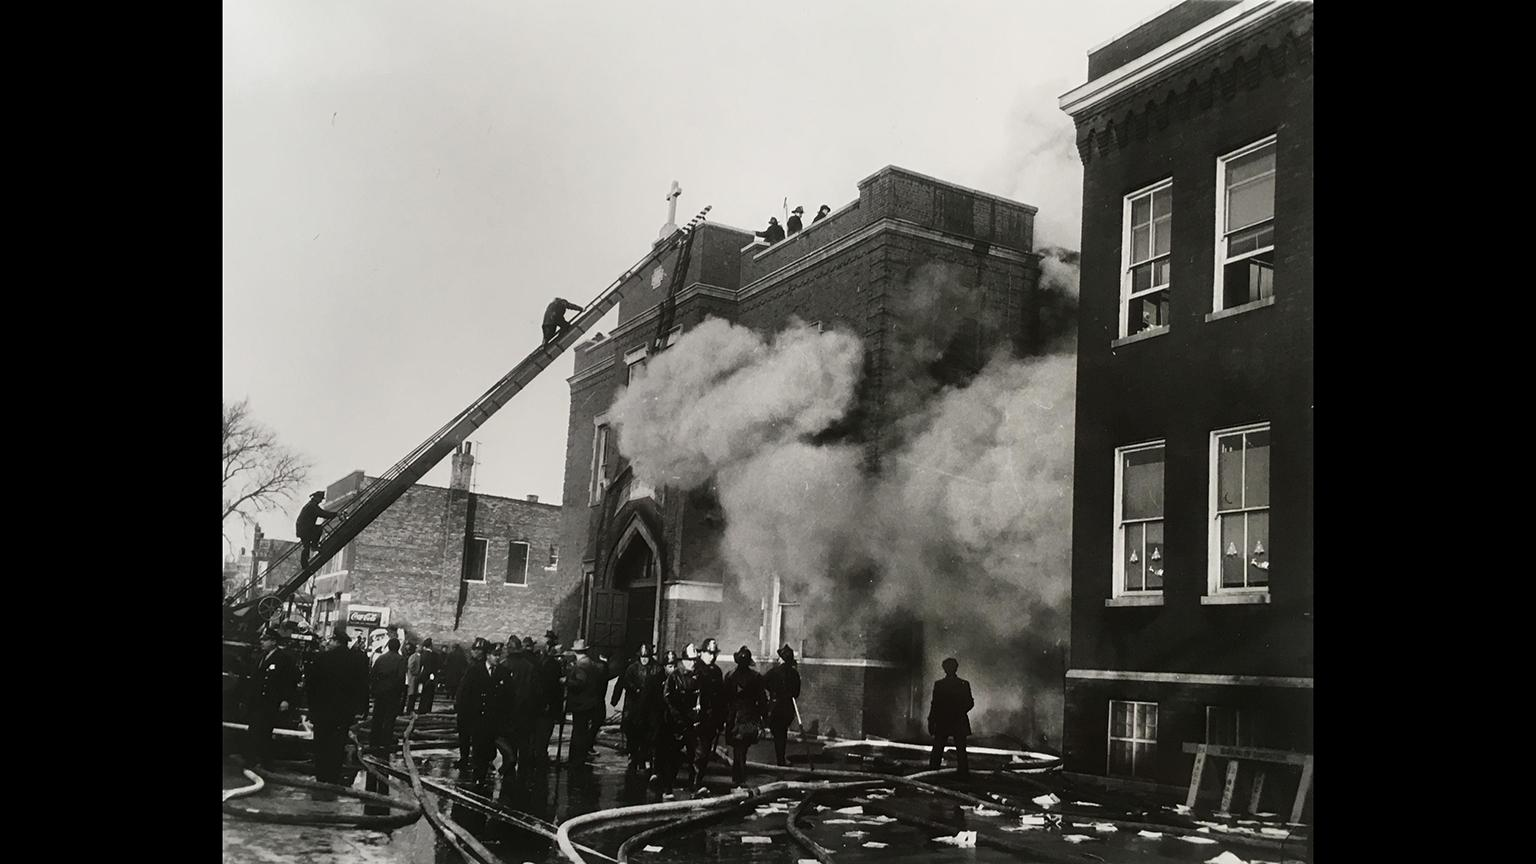 Firefighters at the scene of the fire at Our Lady of the Angels on Dec. 1, 1958. (Photo of image courtesy Chicago History Museum)